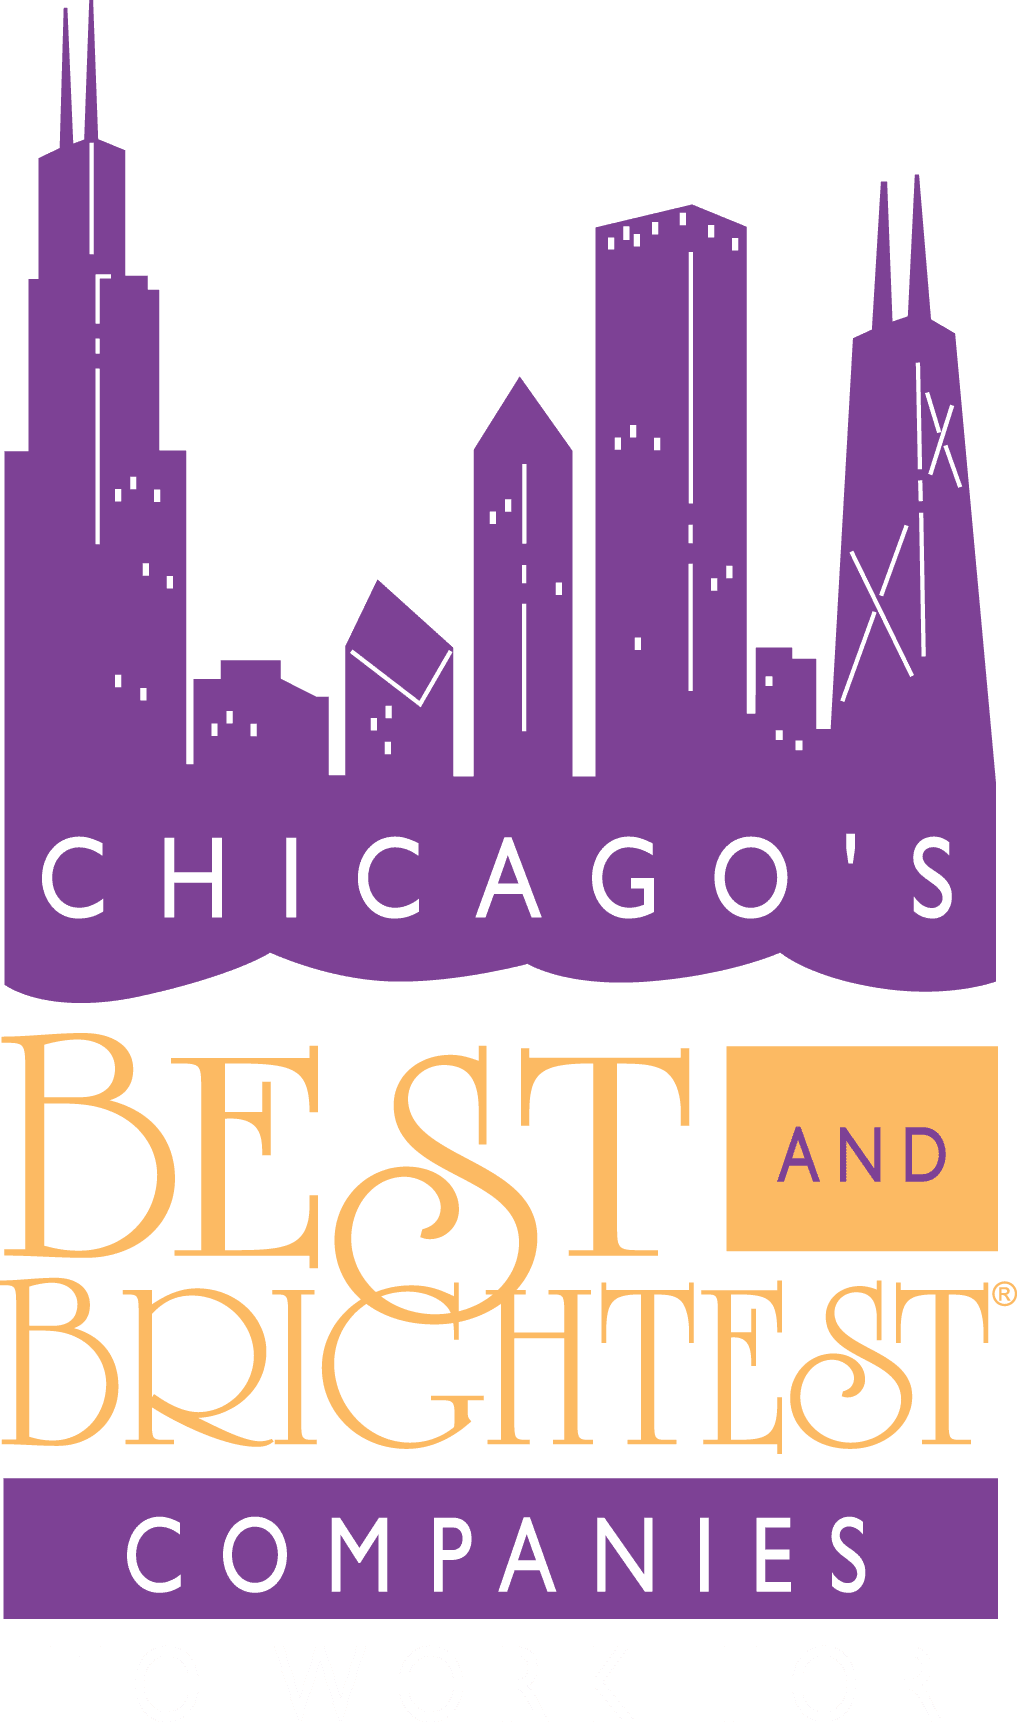 Chicago S 2020 Best And Brightest Companies To Work For The Best And Brightest